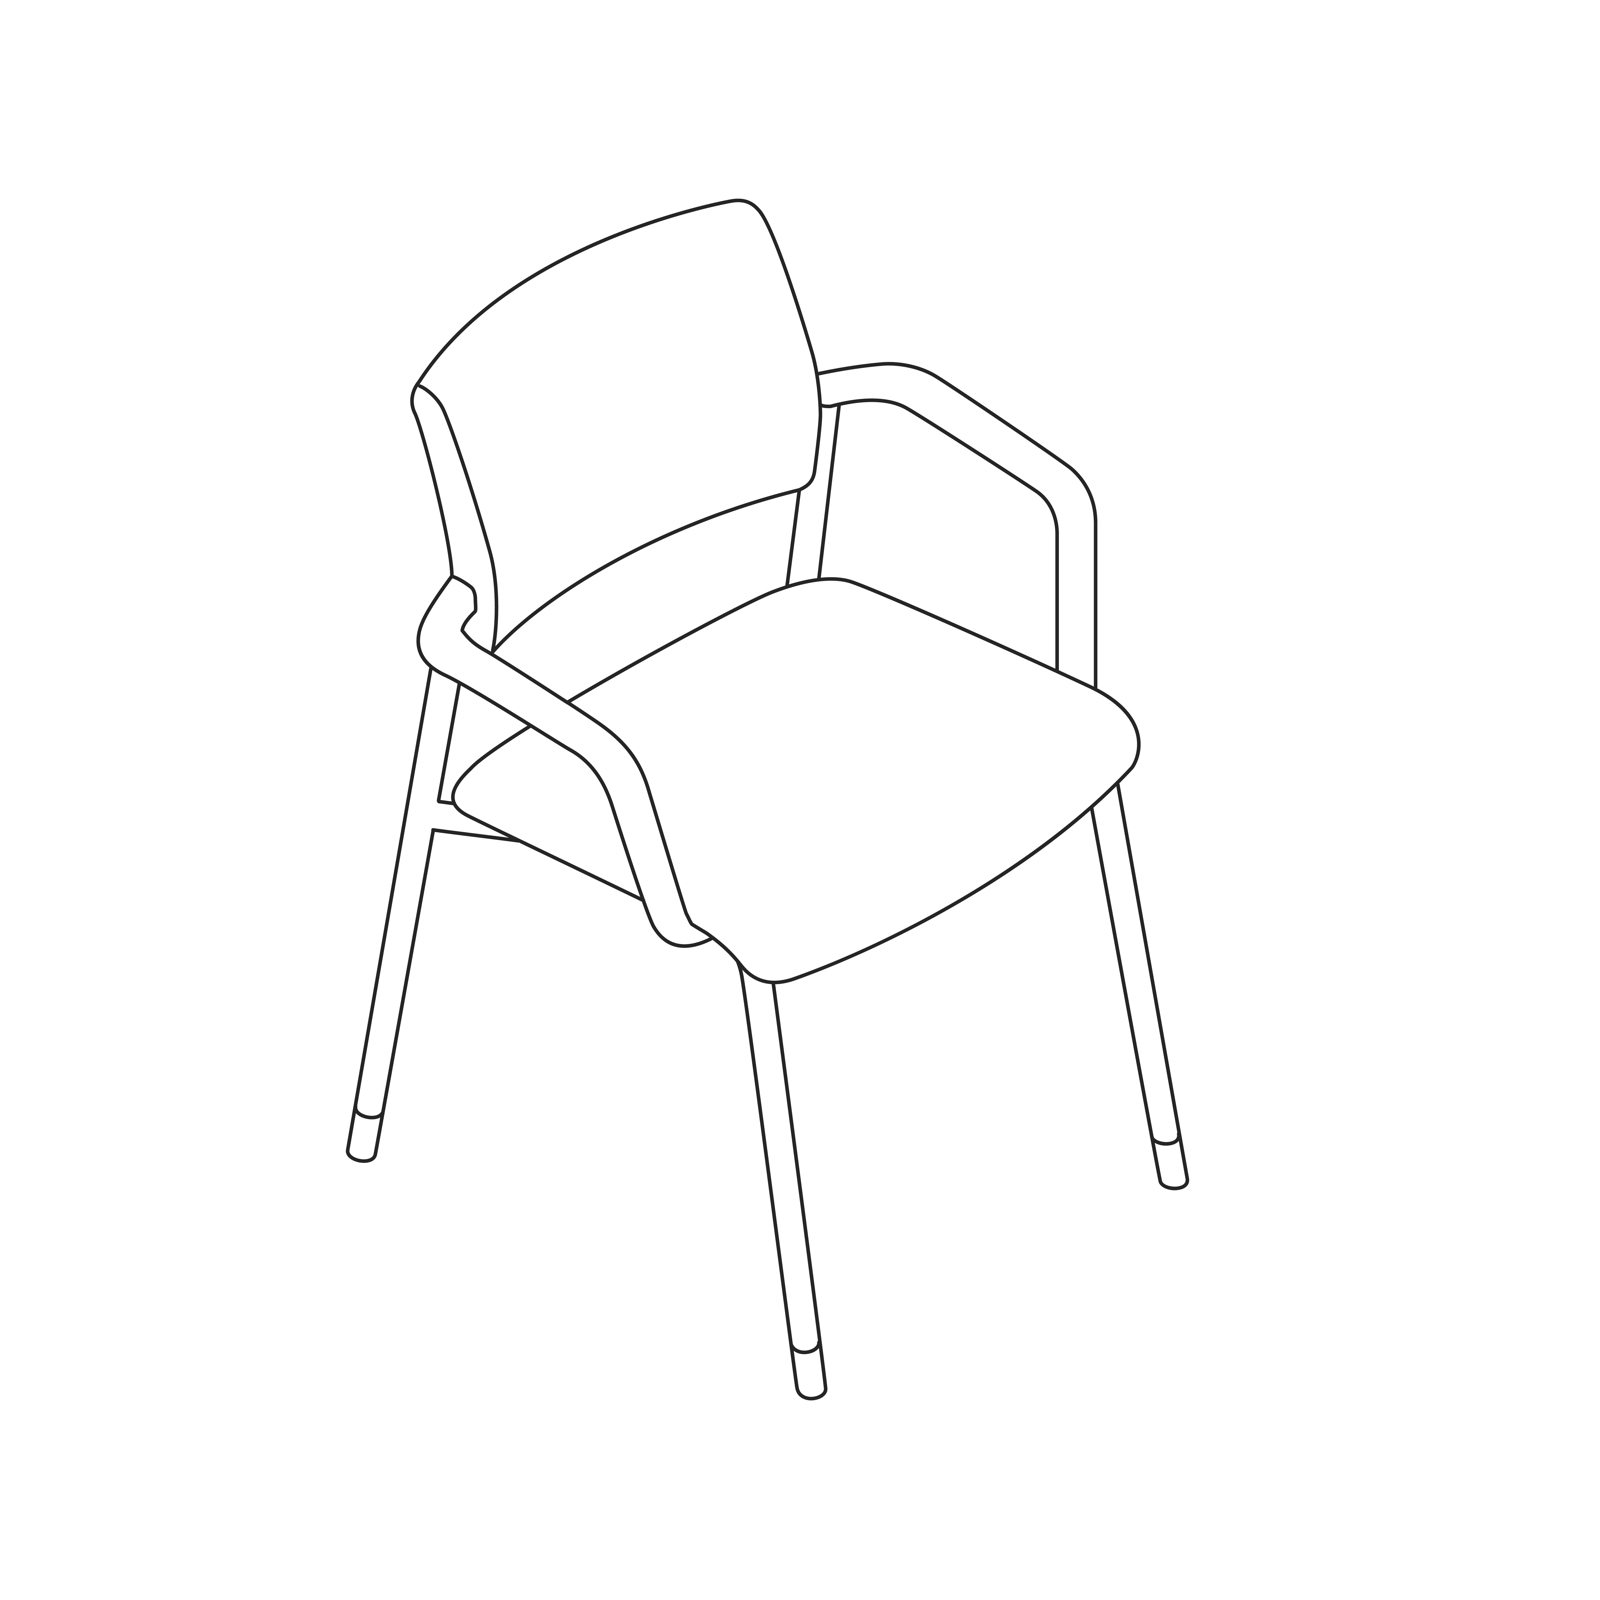 A line drawing of a Verus Side Chair.